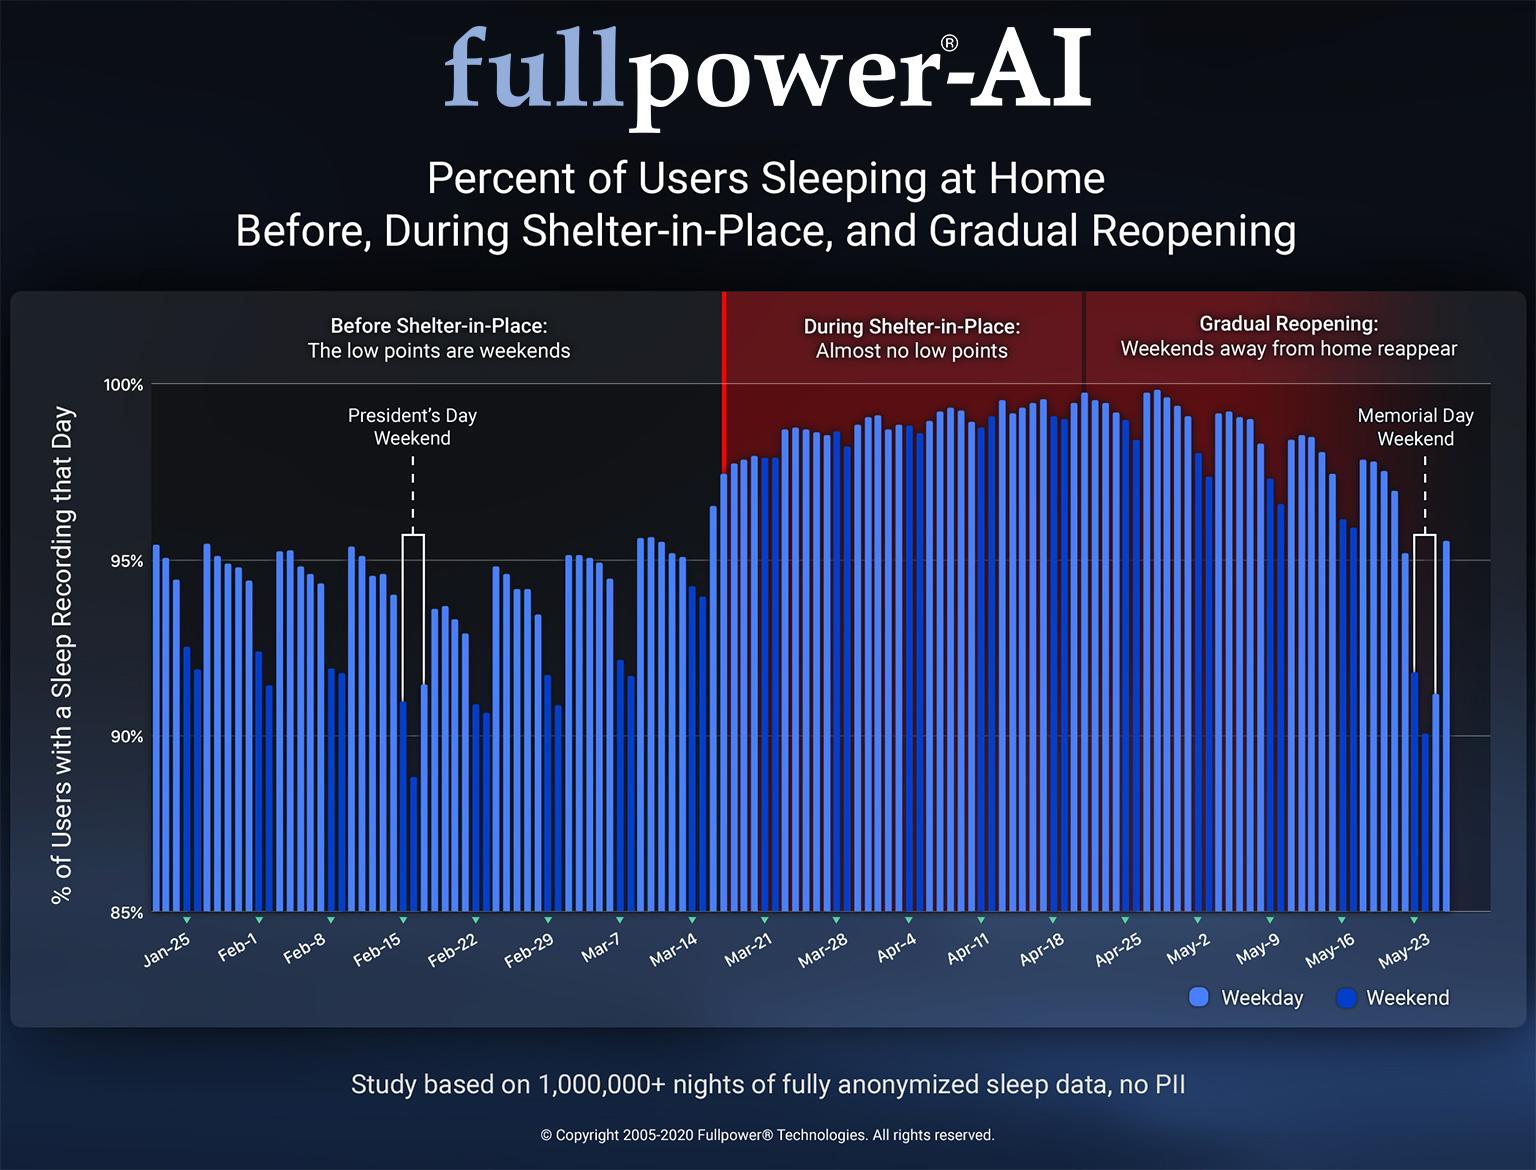 percent-of-users-sleeping-at-home-before-during-shelter-in-place-and-gradual-reopening